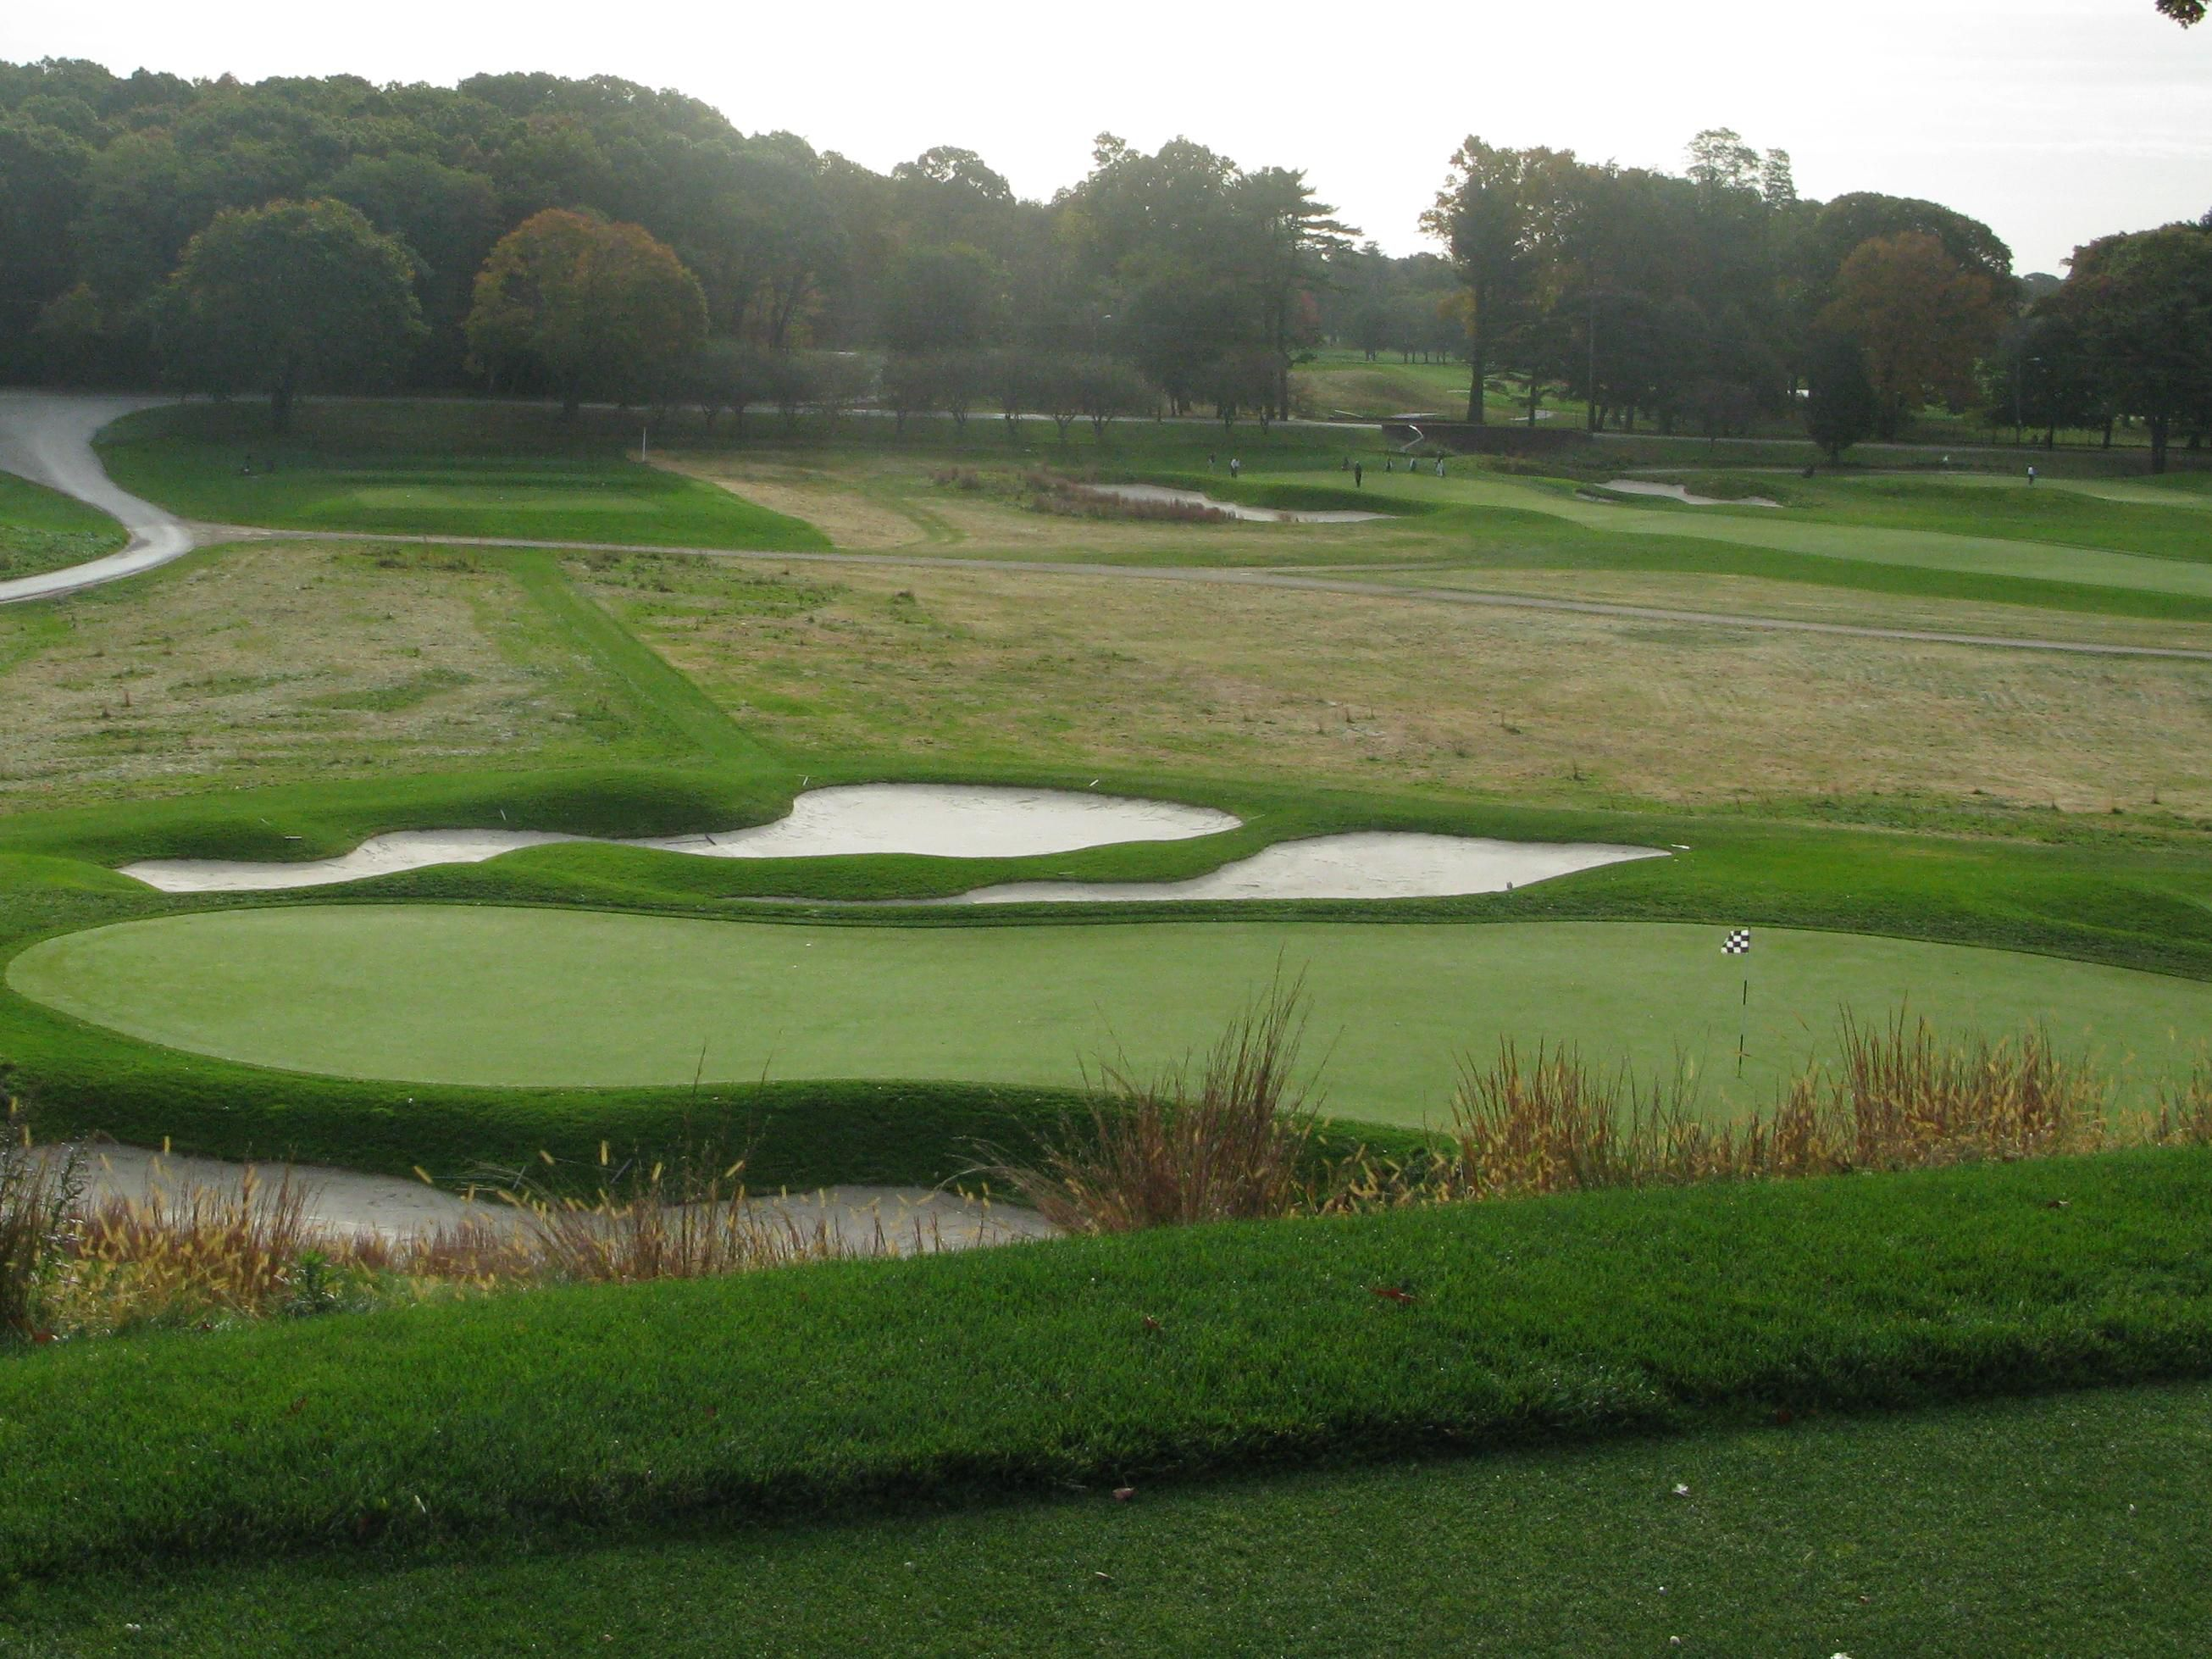 Golfing is just 10 minutes away at the Bethpage Golf Course